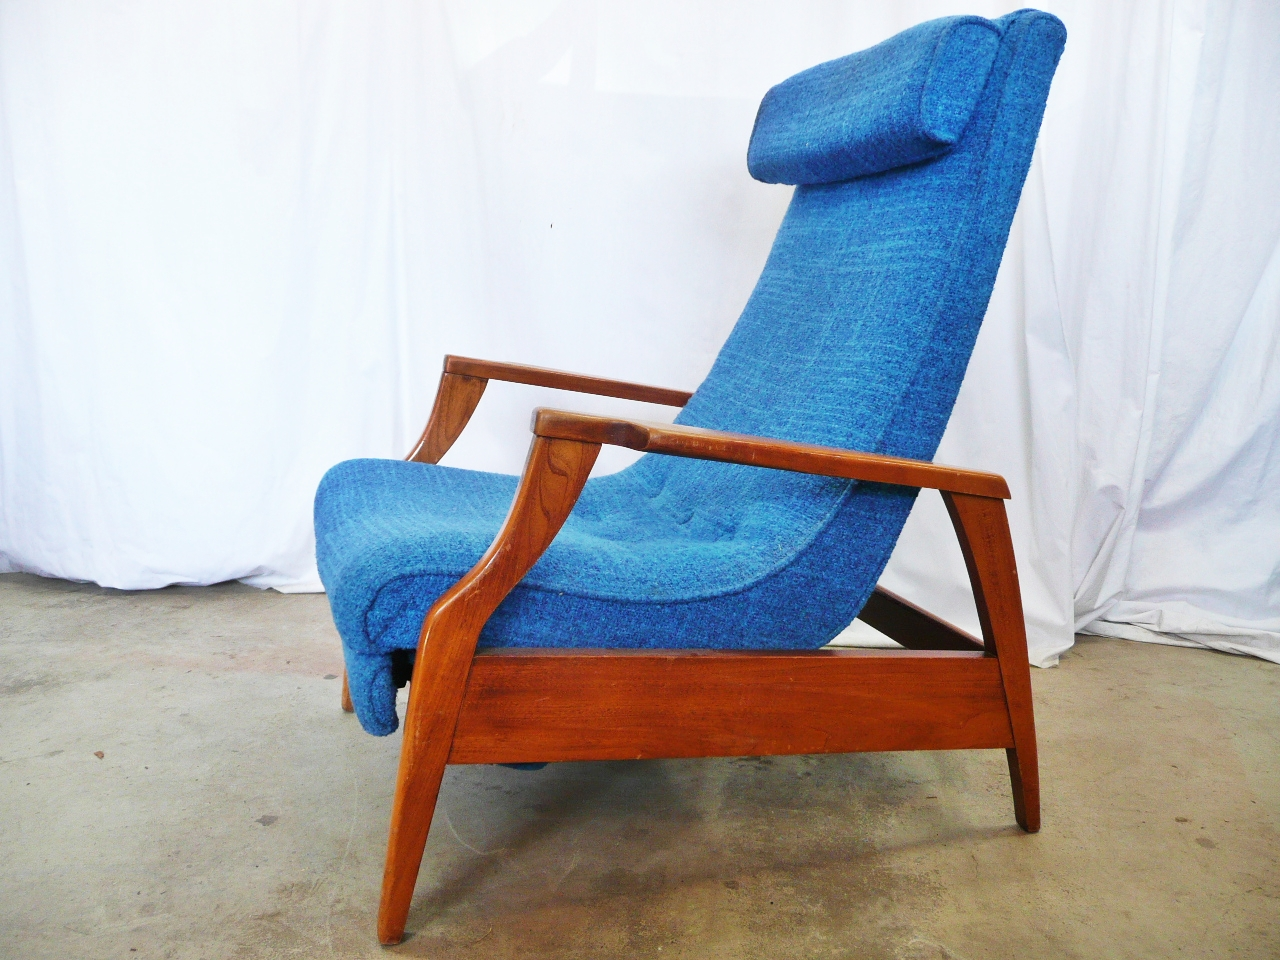 Modern Recliner Chairs Modern Mid Century Danish Vintage Furniture Shop Used